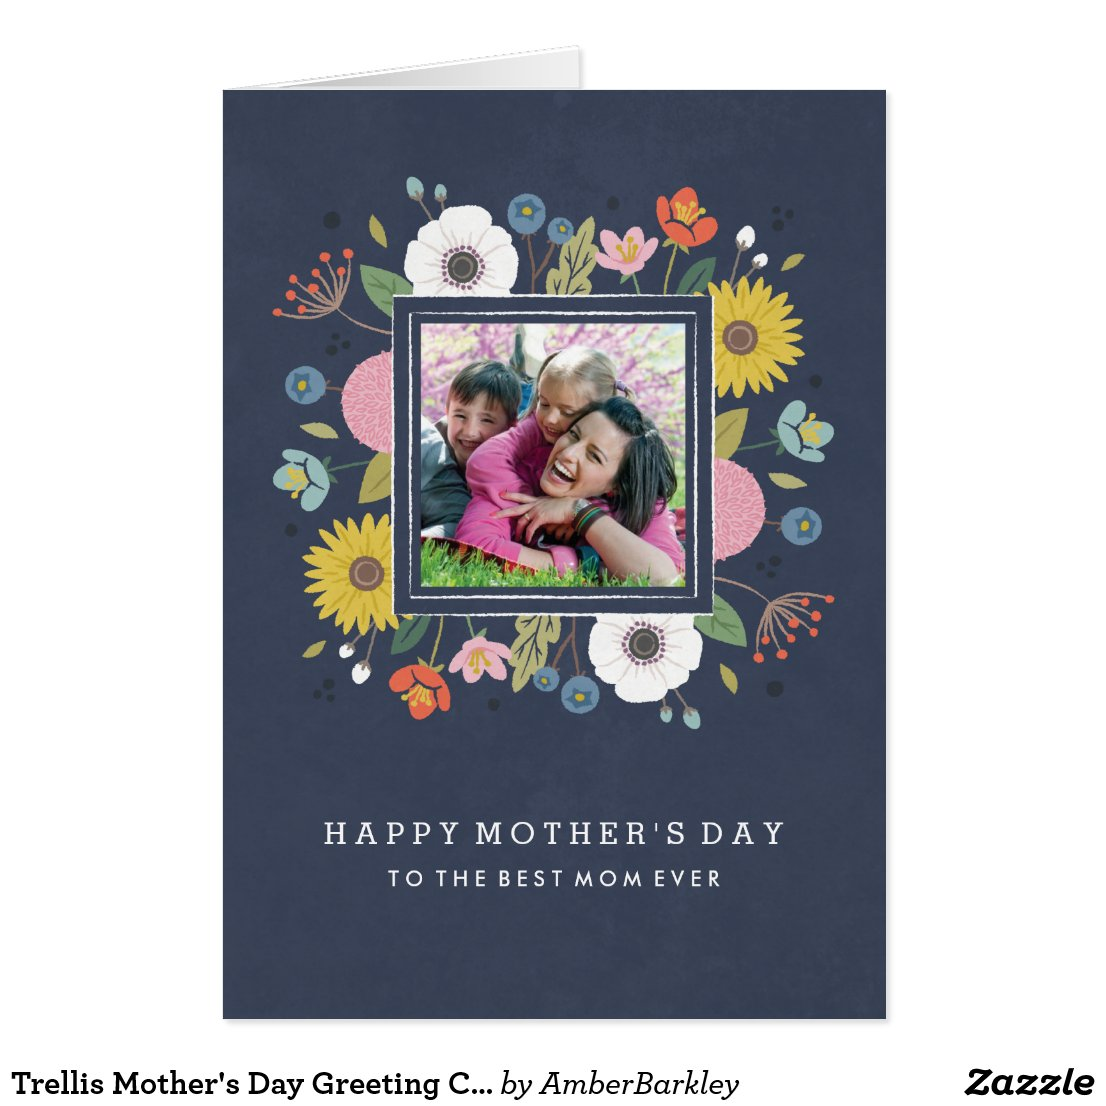 Trellis Mother's Day Greeting Card